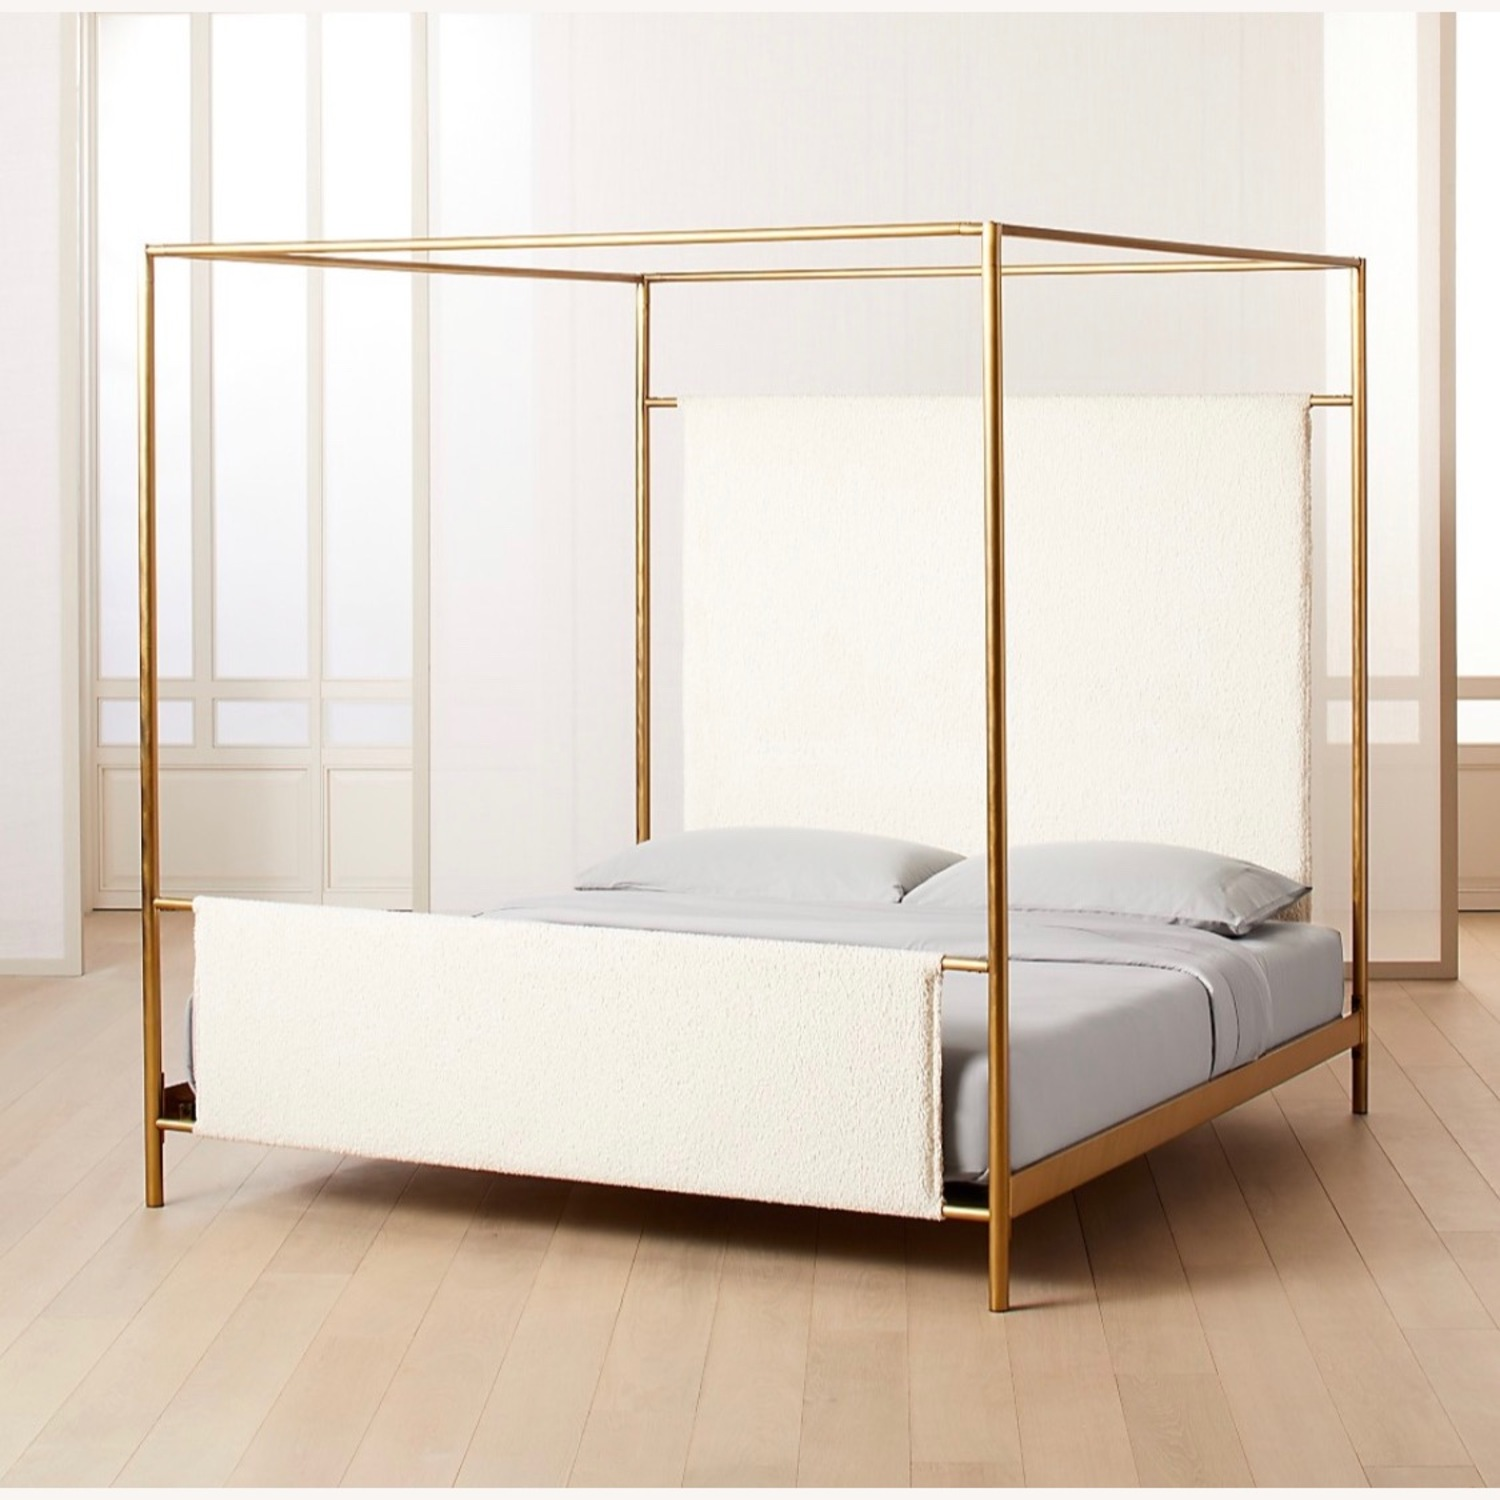 CB2 Odessa Shearling Canopy King Bed - image-3